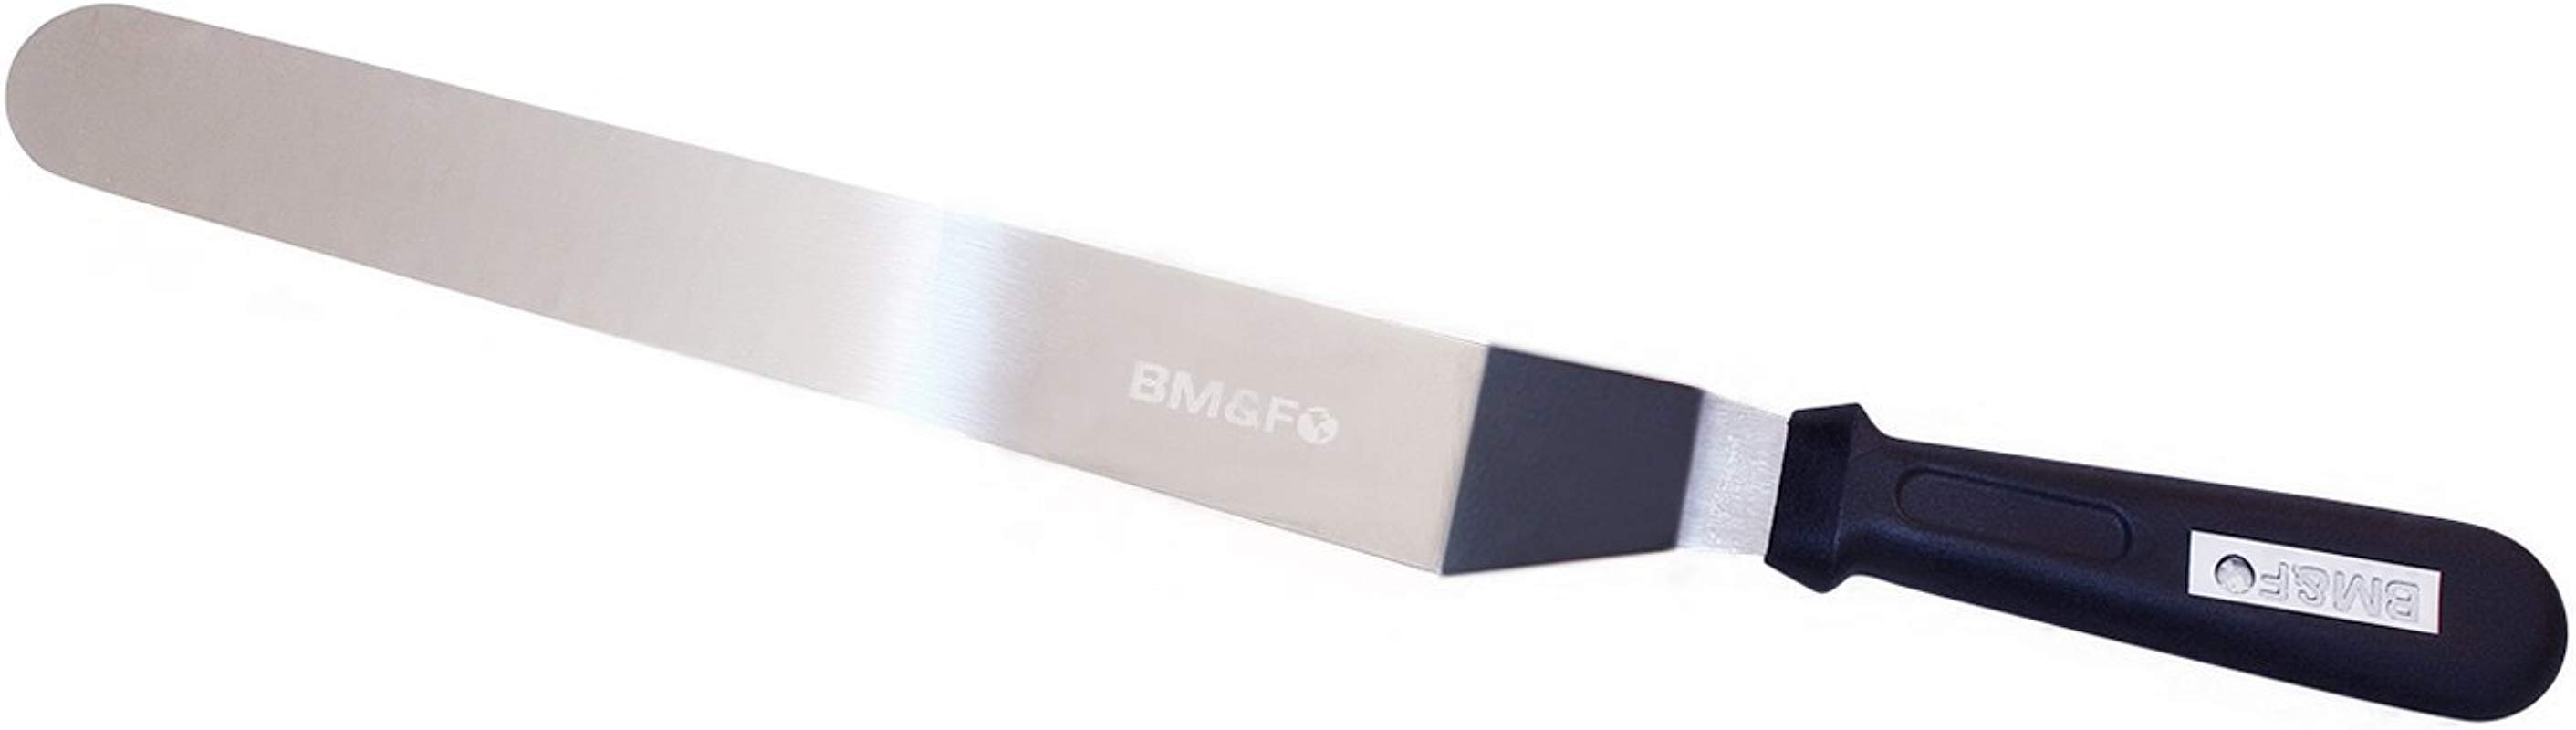 Offset Icing Spatula Metal Spatula For Cake Frosting Decorating And Barbecue Heat Resistant Flexible Baking Stainless Steel Tool Great For Any Cooking Set In The Kitchen Best Friend Gifts